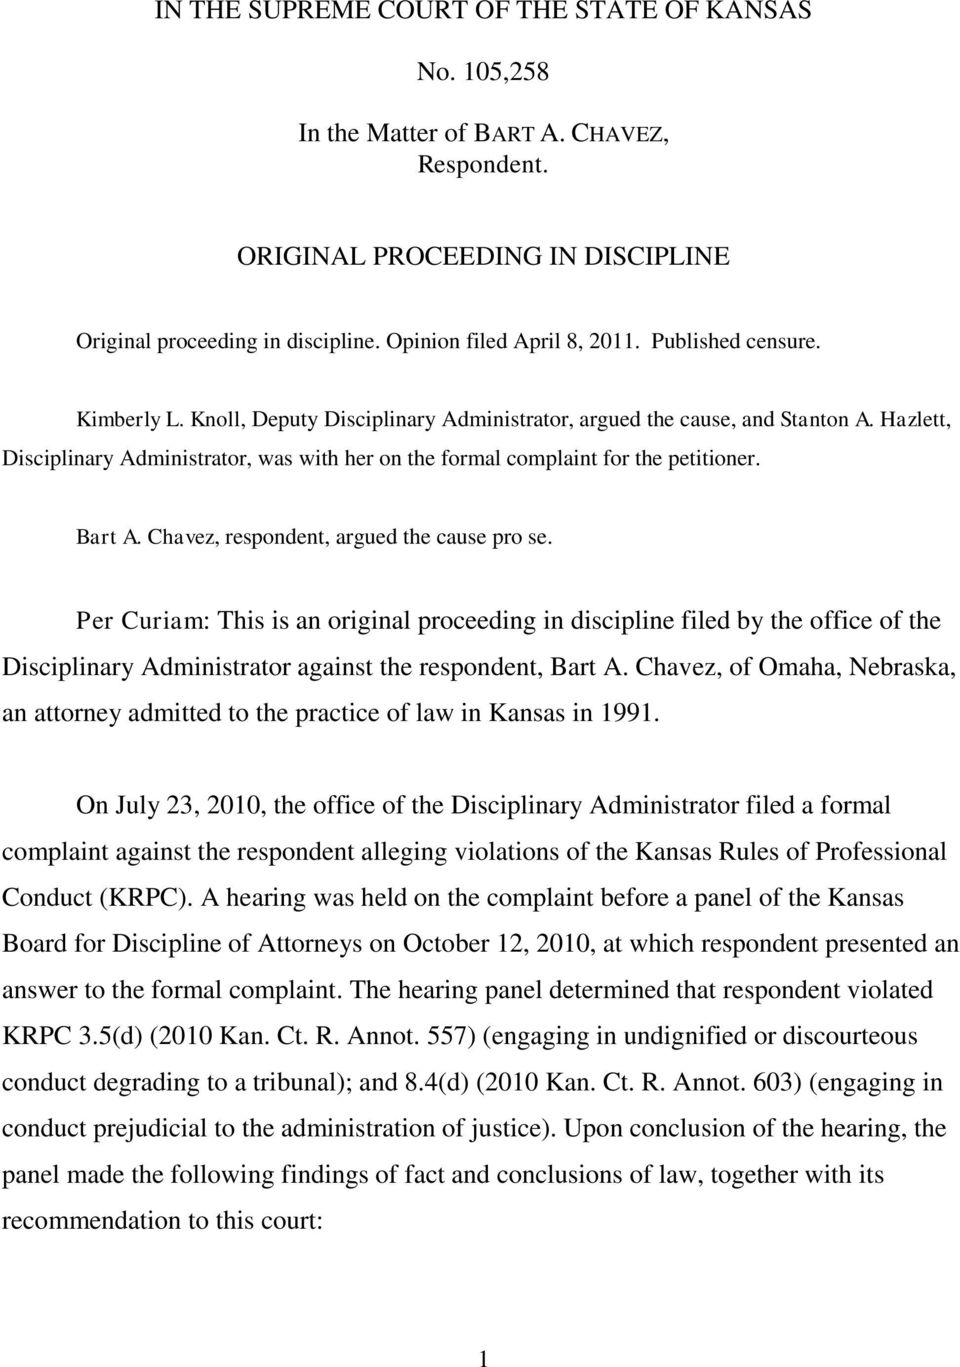 Bart A. Chavez, respondent, argued the cause pro se. Per Curiam: This is an original proceeding in discipline filed by the office of the Disciplinary Administrator against the respondent, Bart A.